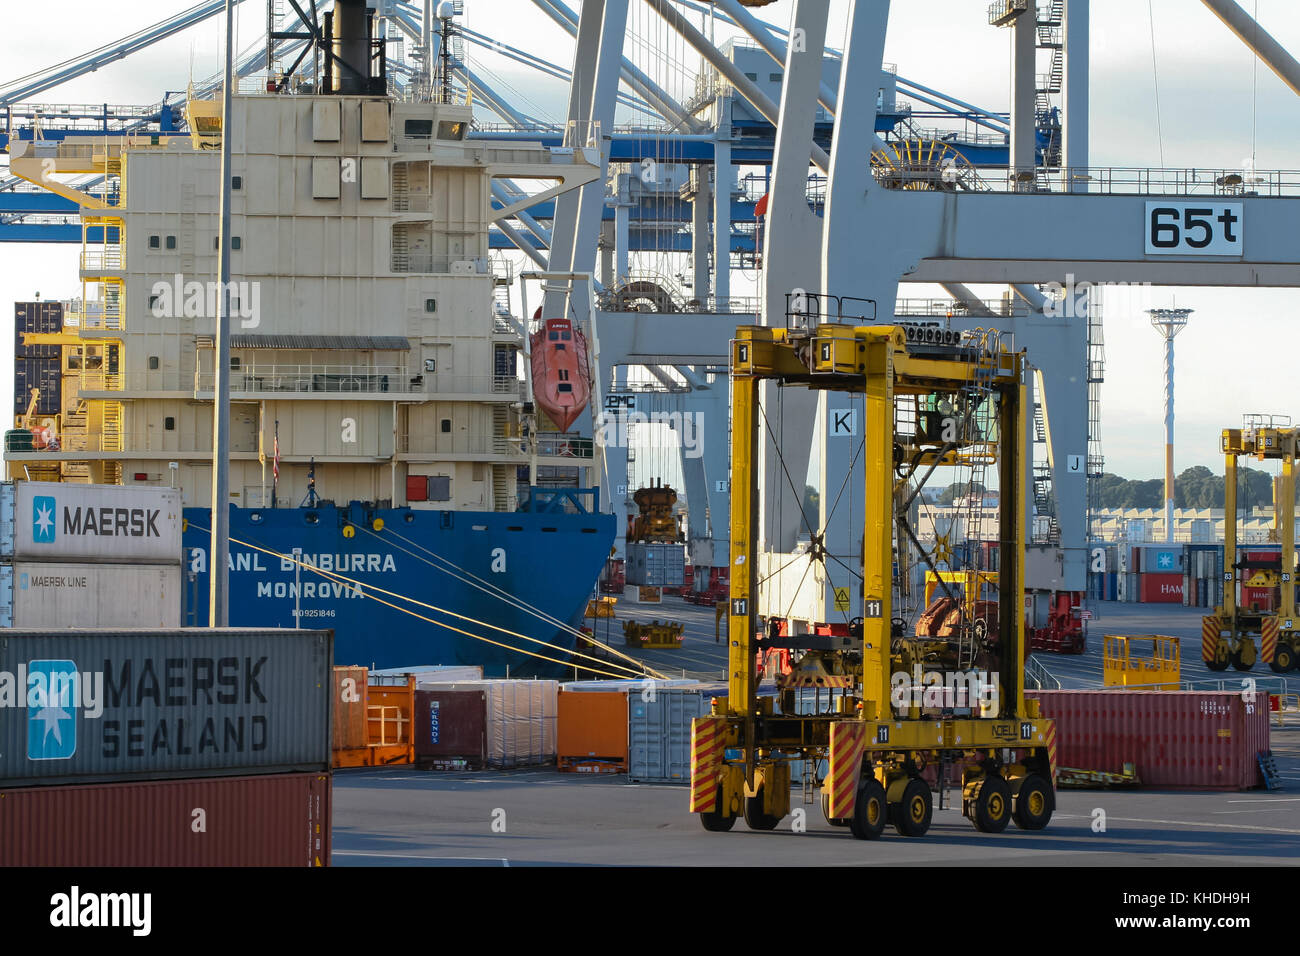 AUCKLAND, NEW ZEALAND - 17th APRIL 2012: Vessel, straddle carriers, wheeled cranes and stack of containers at Auckland - Stock Image